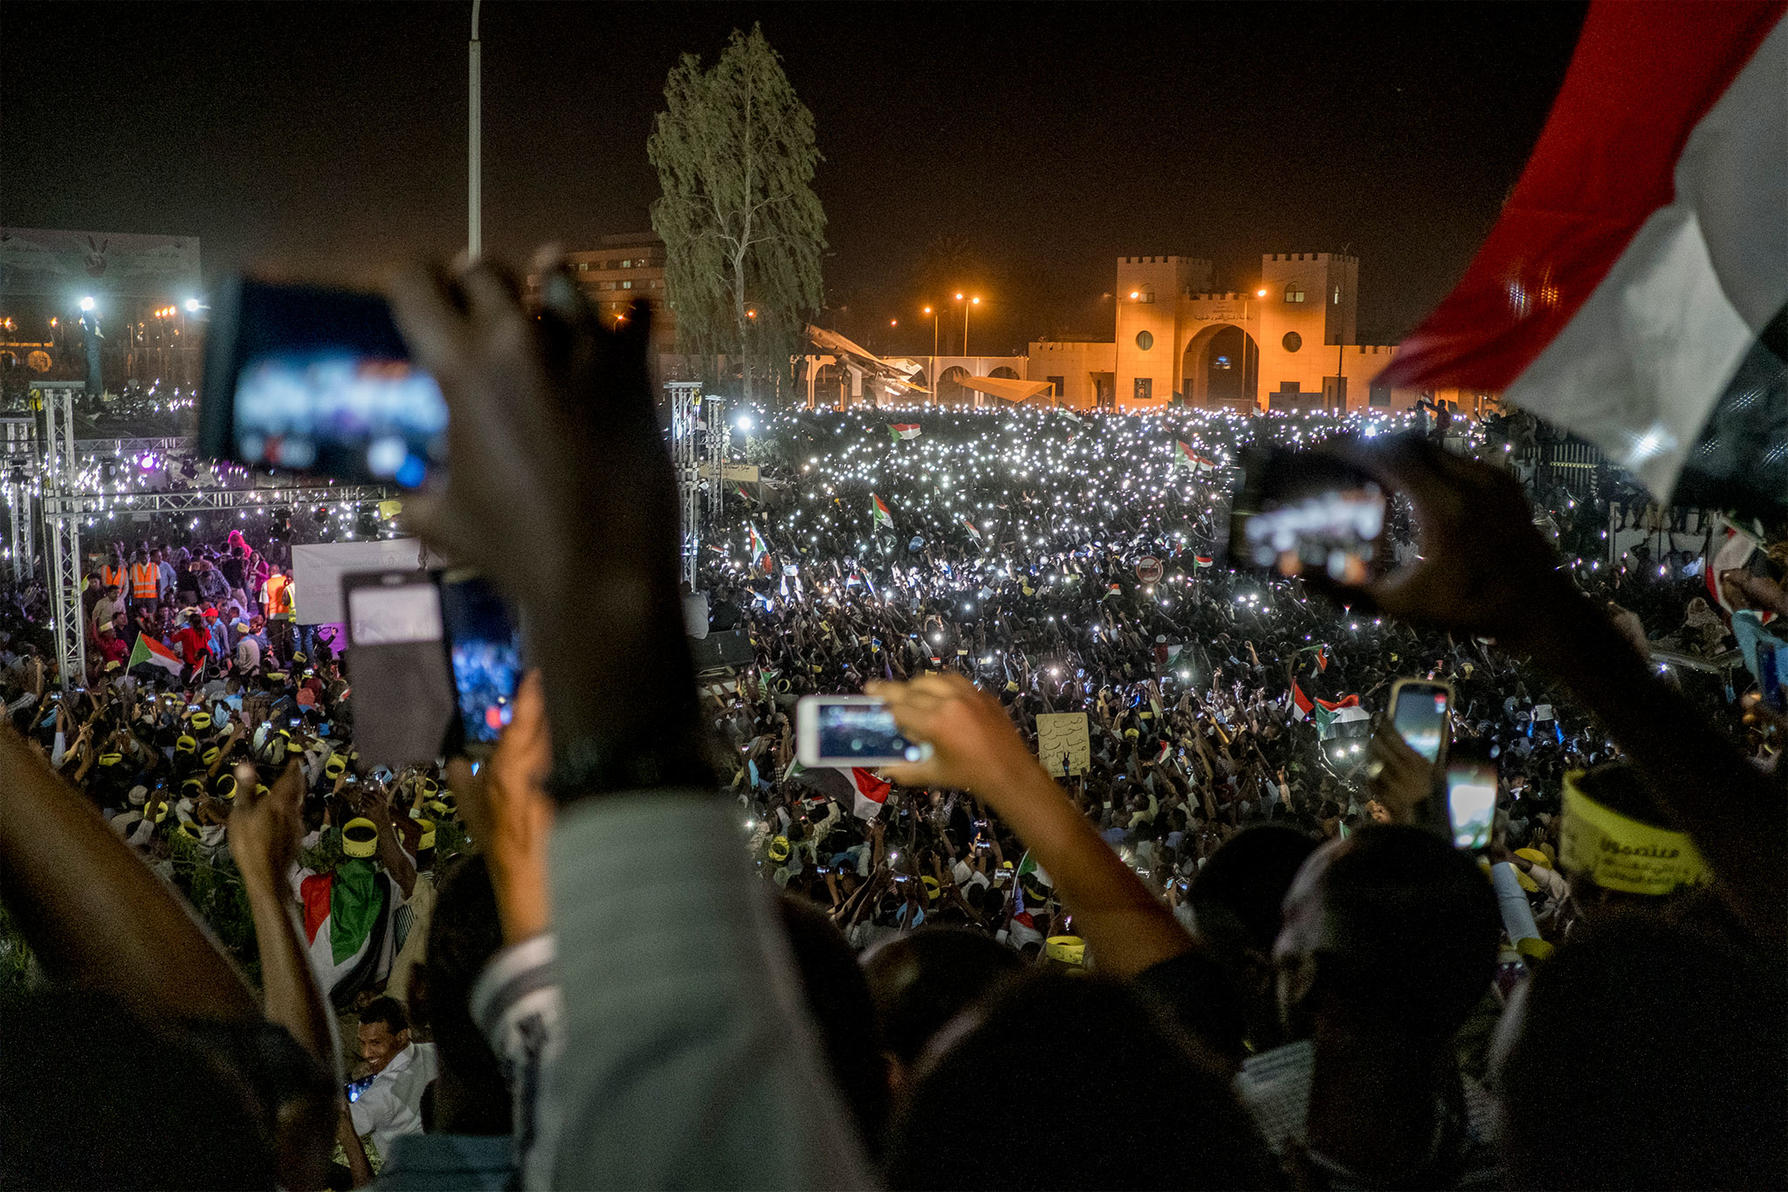 Protesters at a night rally outside the military headquarters in Khartoum, Sudan, April 2019